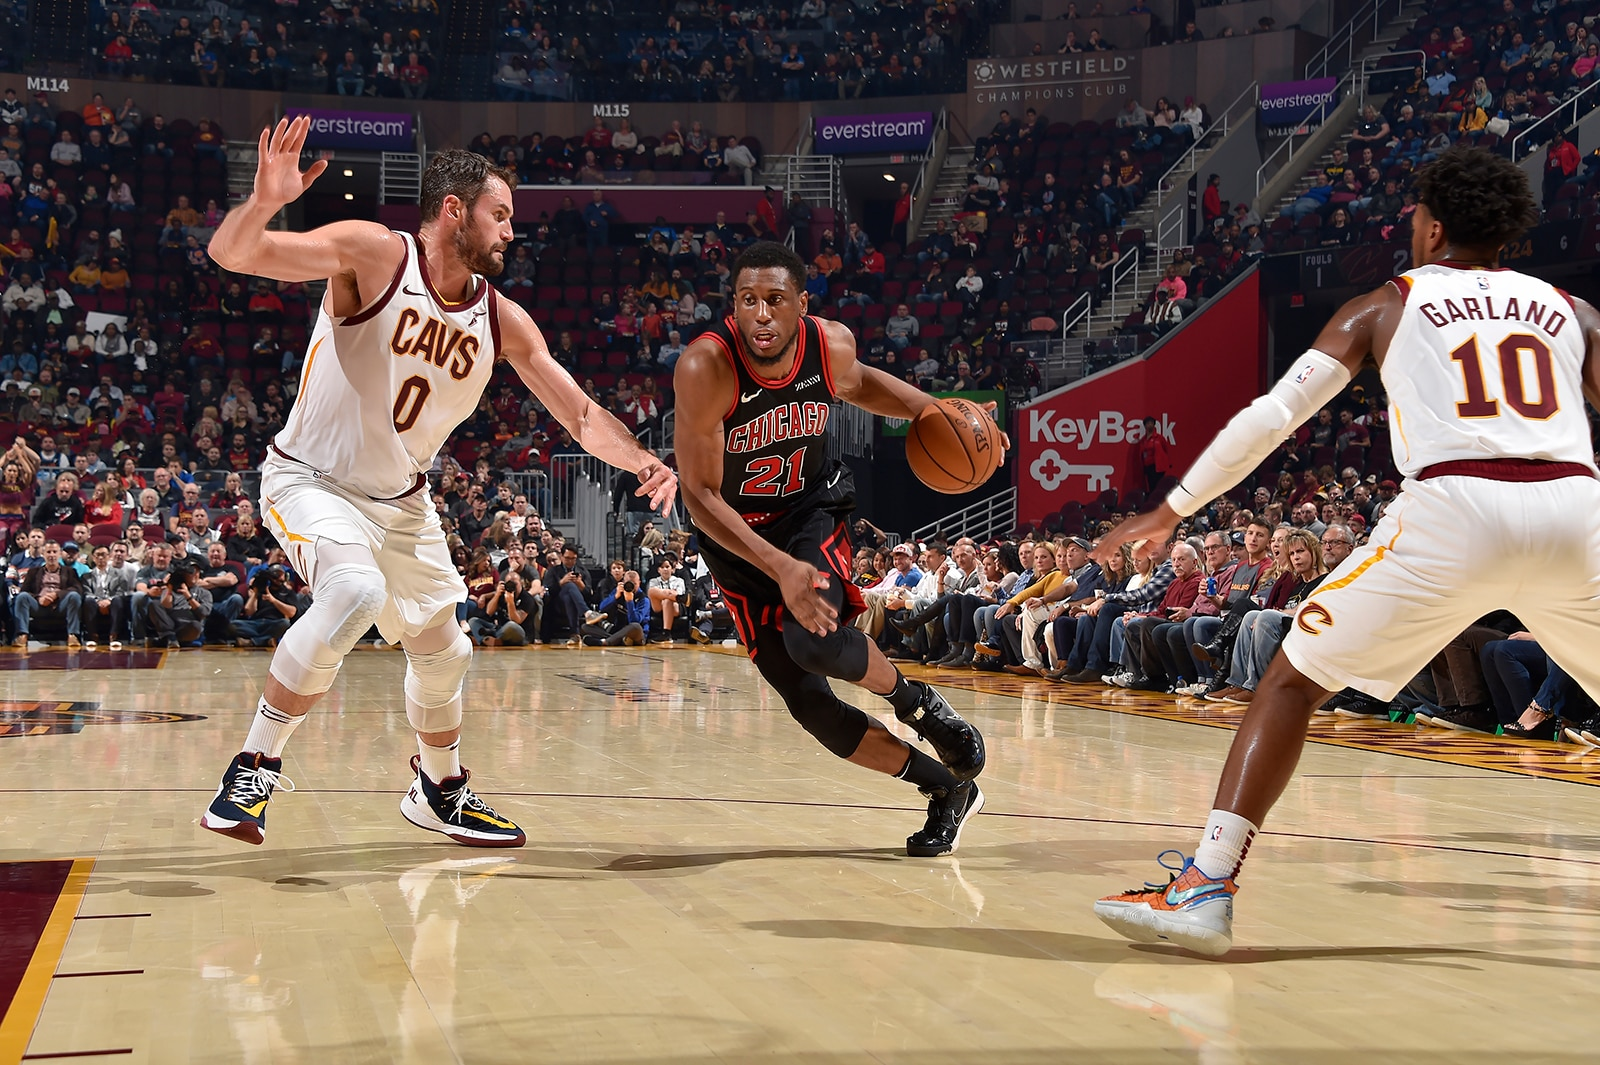 Thad Young Drives on Kevin Love